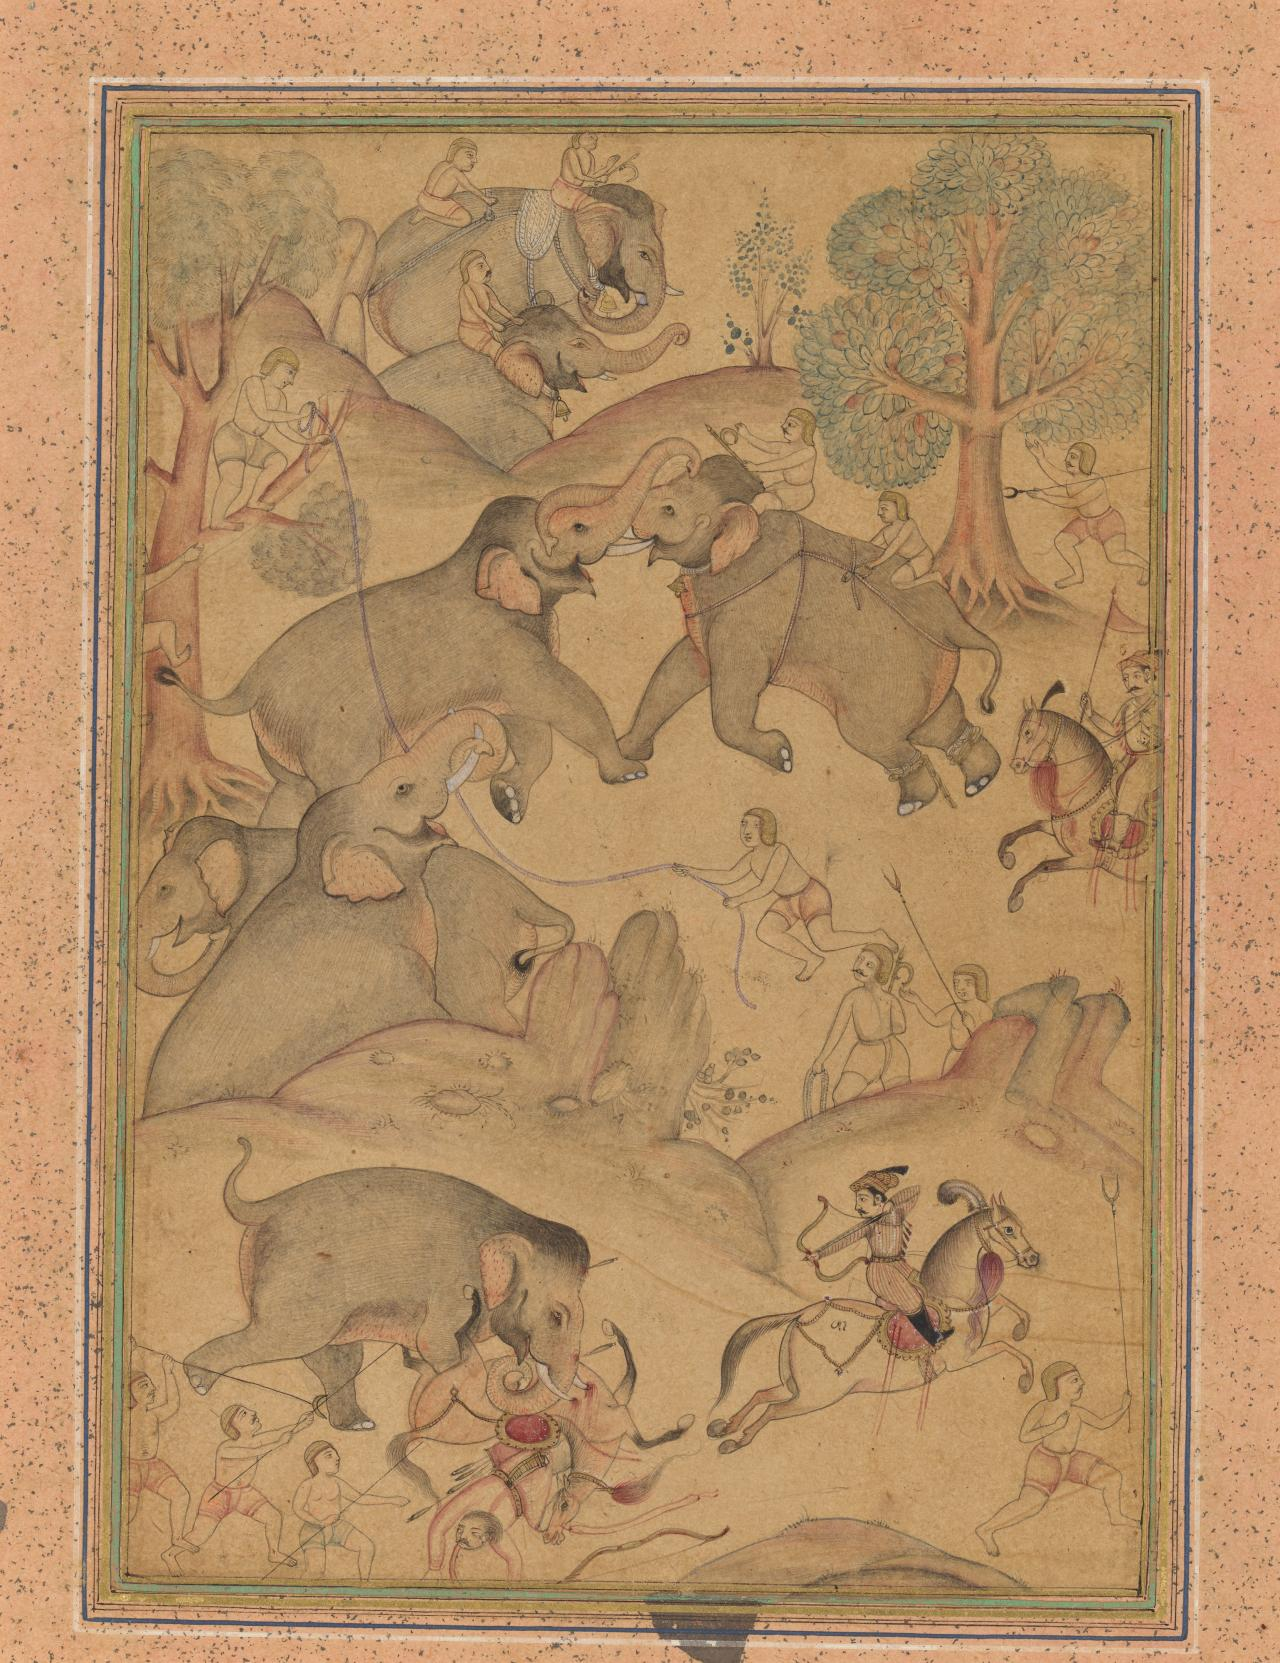 A Mughal nobleman and Hunters trapping wild elephants